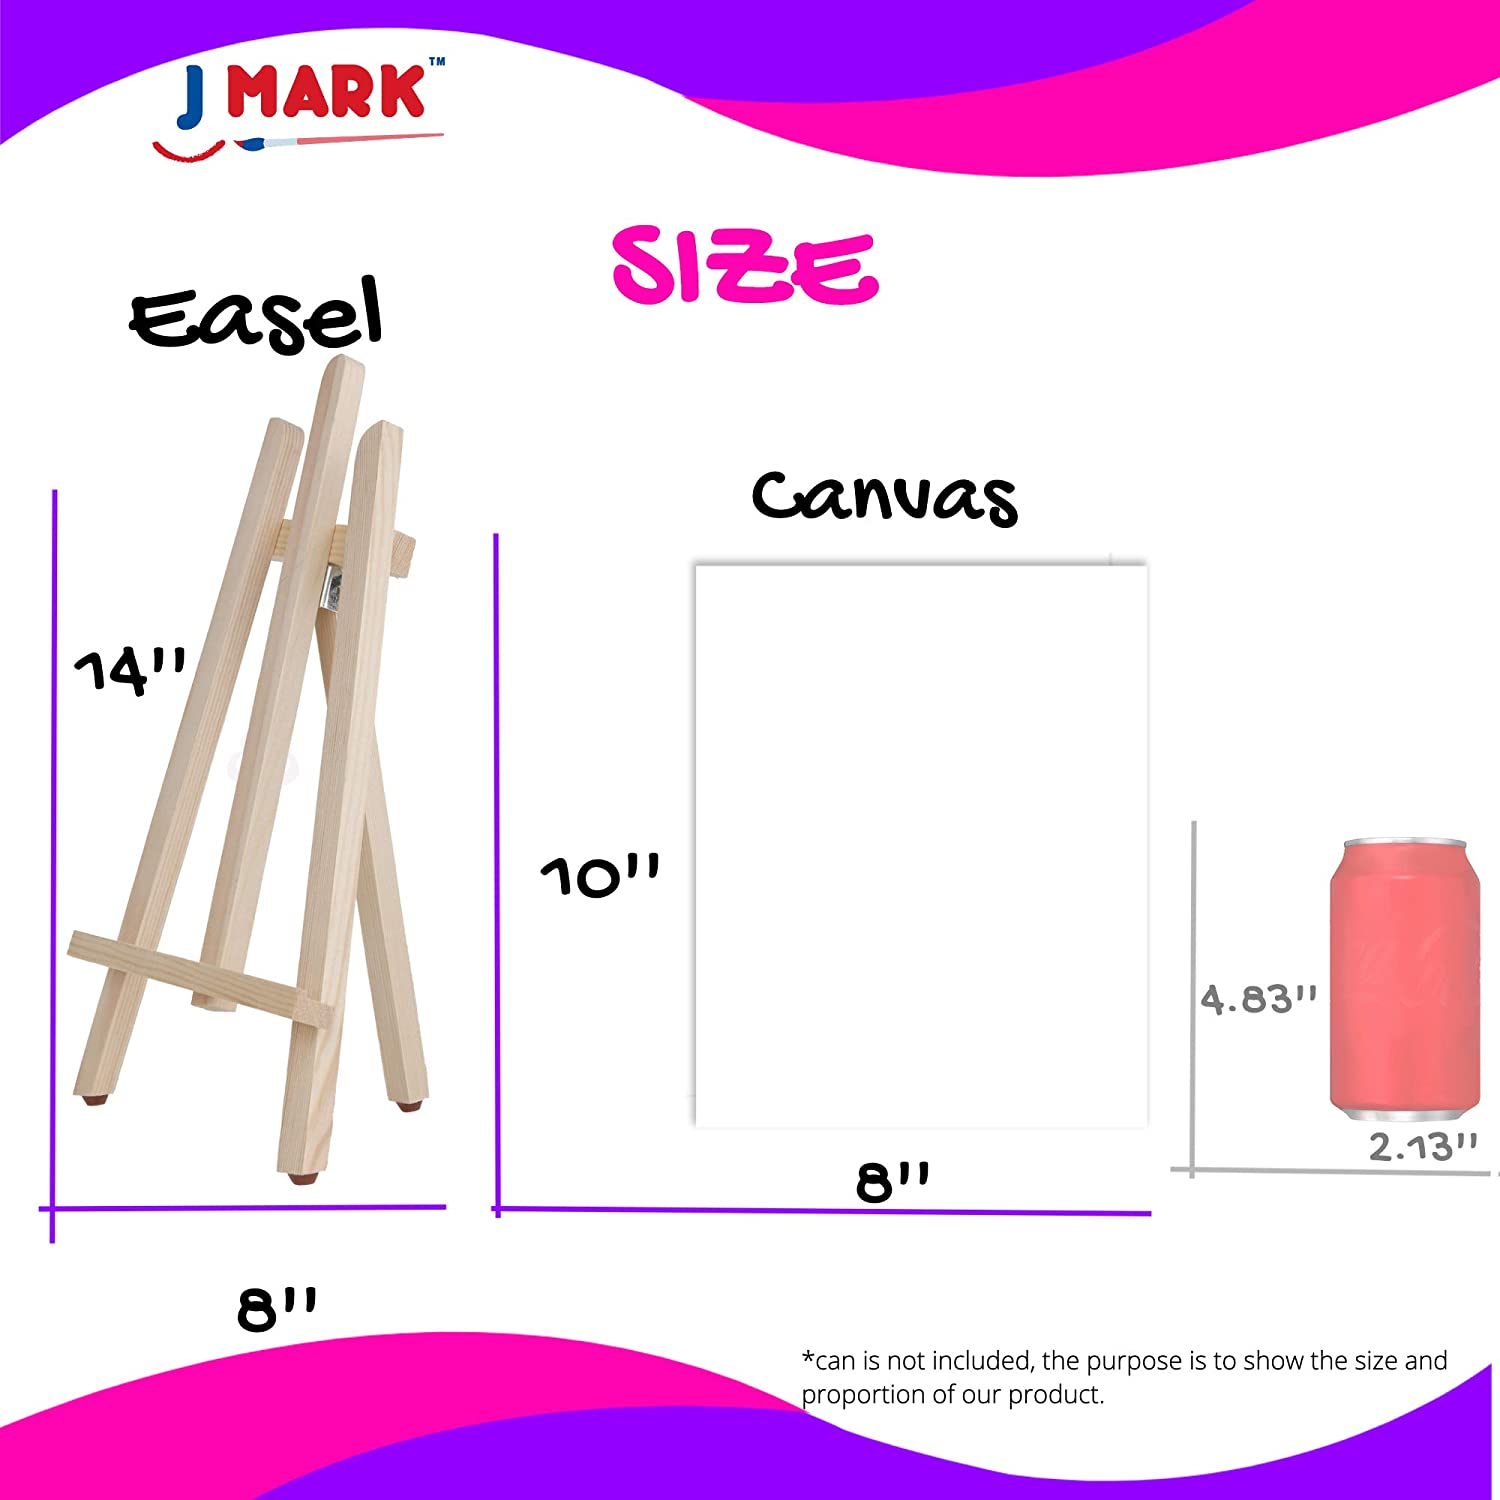 1 Scratch Free Paint Easel 6 Pre-Stenciled Canvases 8 x 10 inches 5 Brushes 10 Well Palette 28 Piece Acrylic Painting Supplies Kit with Storage Bag Kids Art Set for Girls 12 Washable Paints